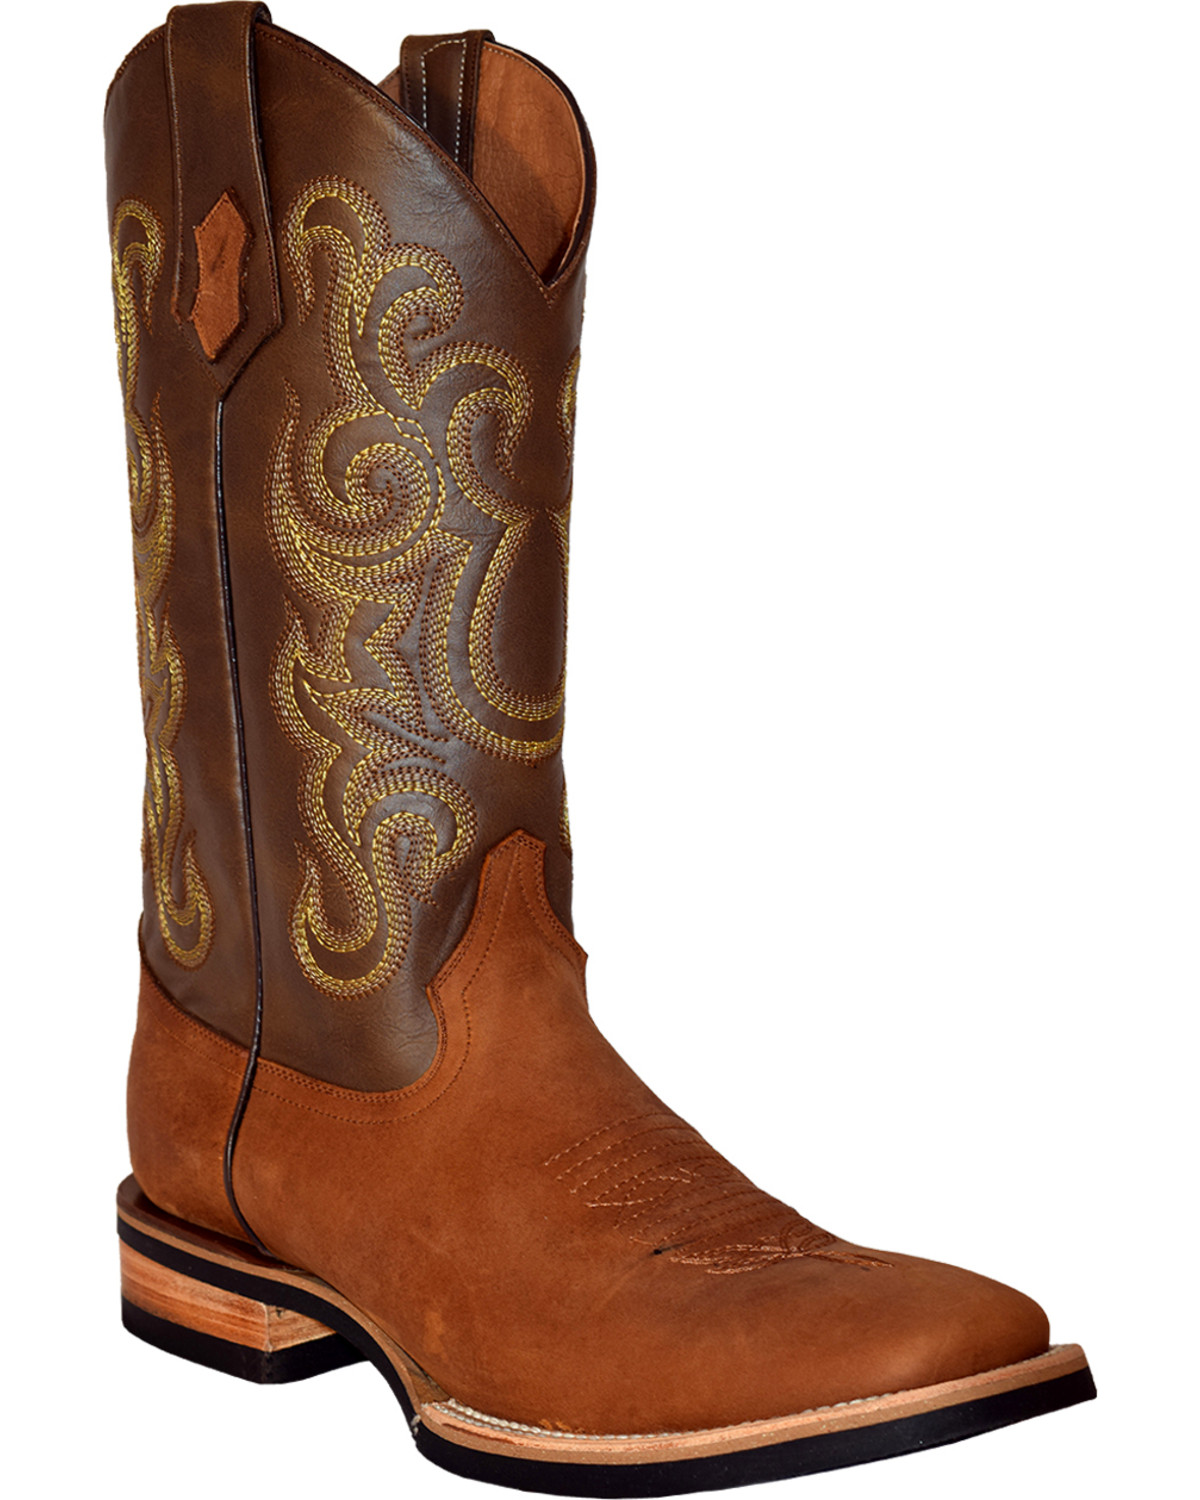 94d06db70a0 Ferrini Men's French Calf Leather Cowboy Boots - Square Toe